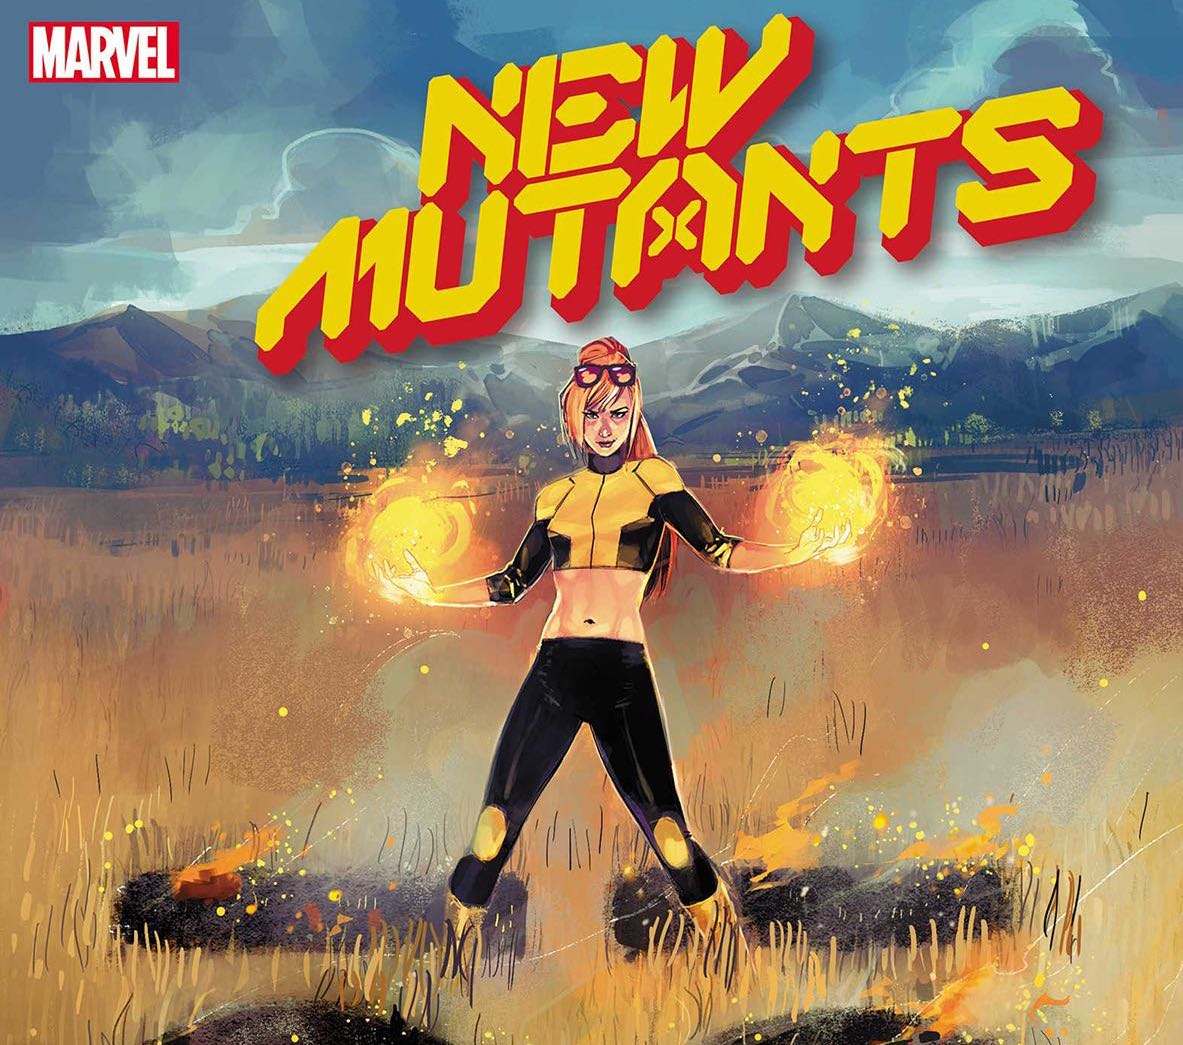 New Mutants #4 Review